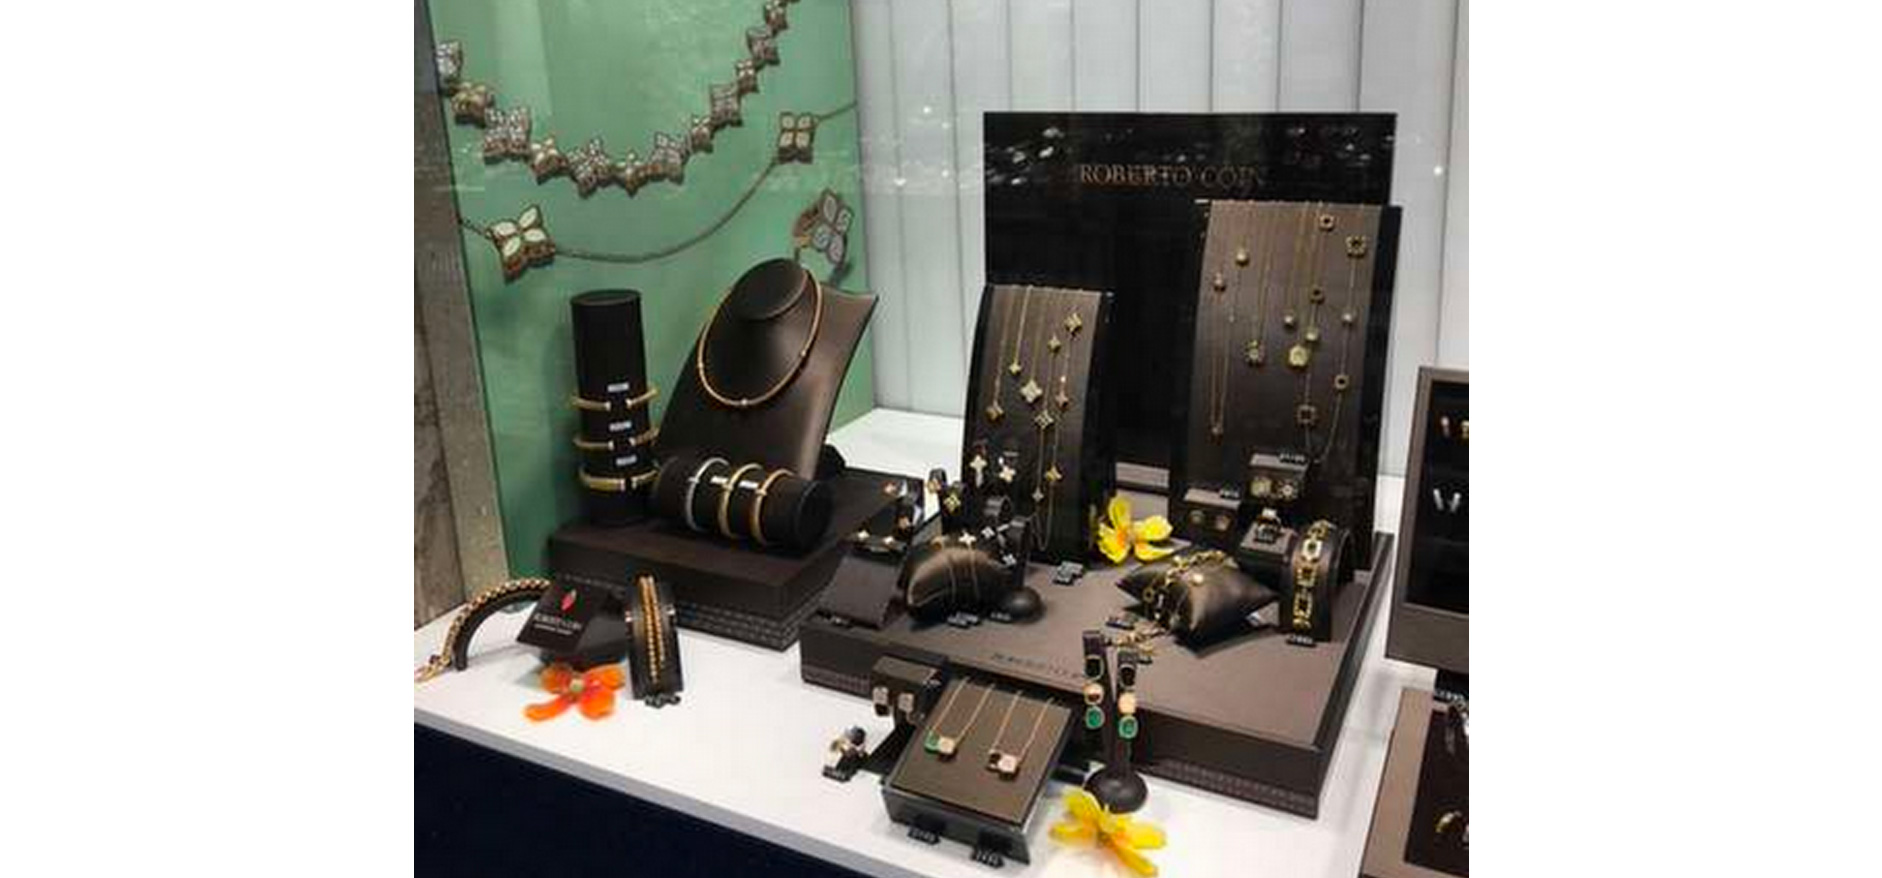 Necklace and jewellery visual merchandising display